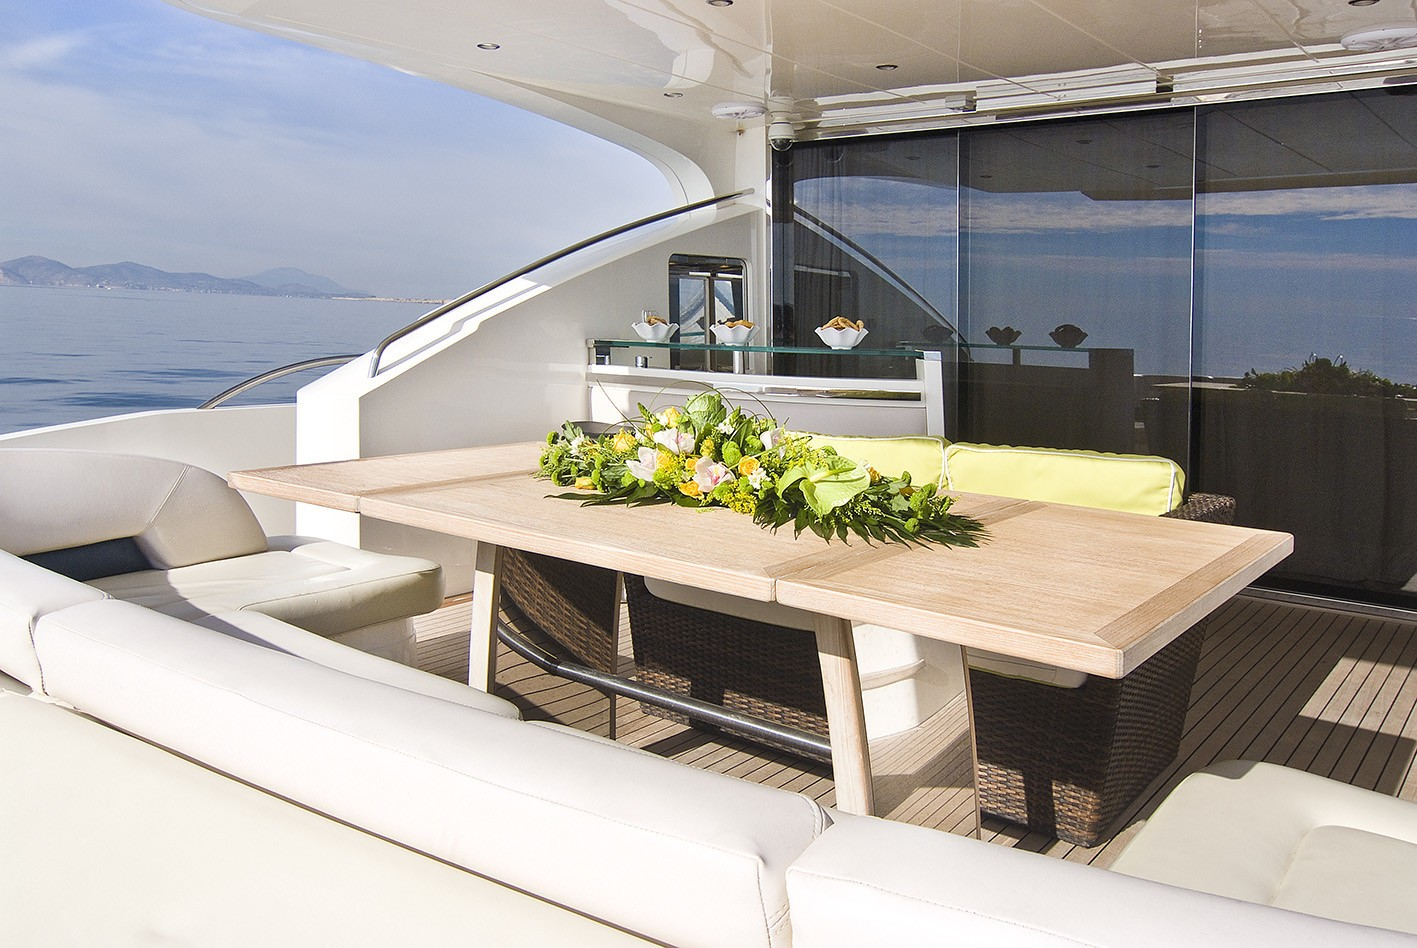 The 26m Yacht CATHERINE